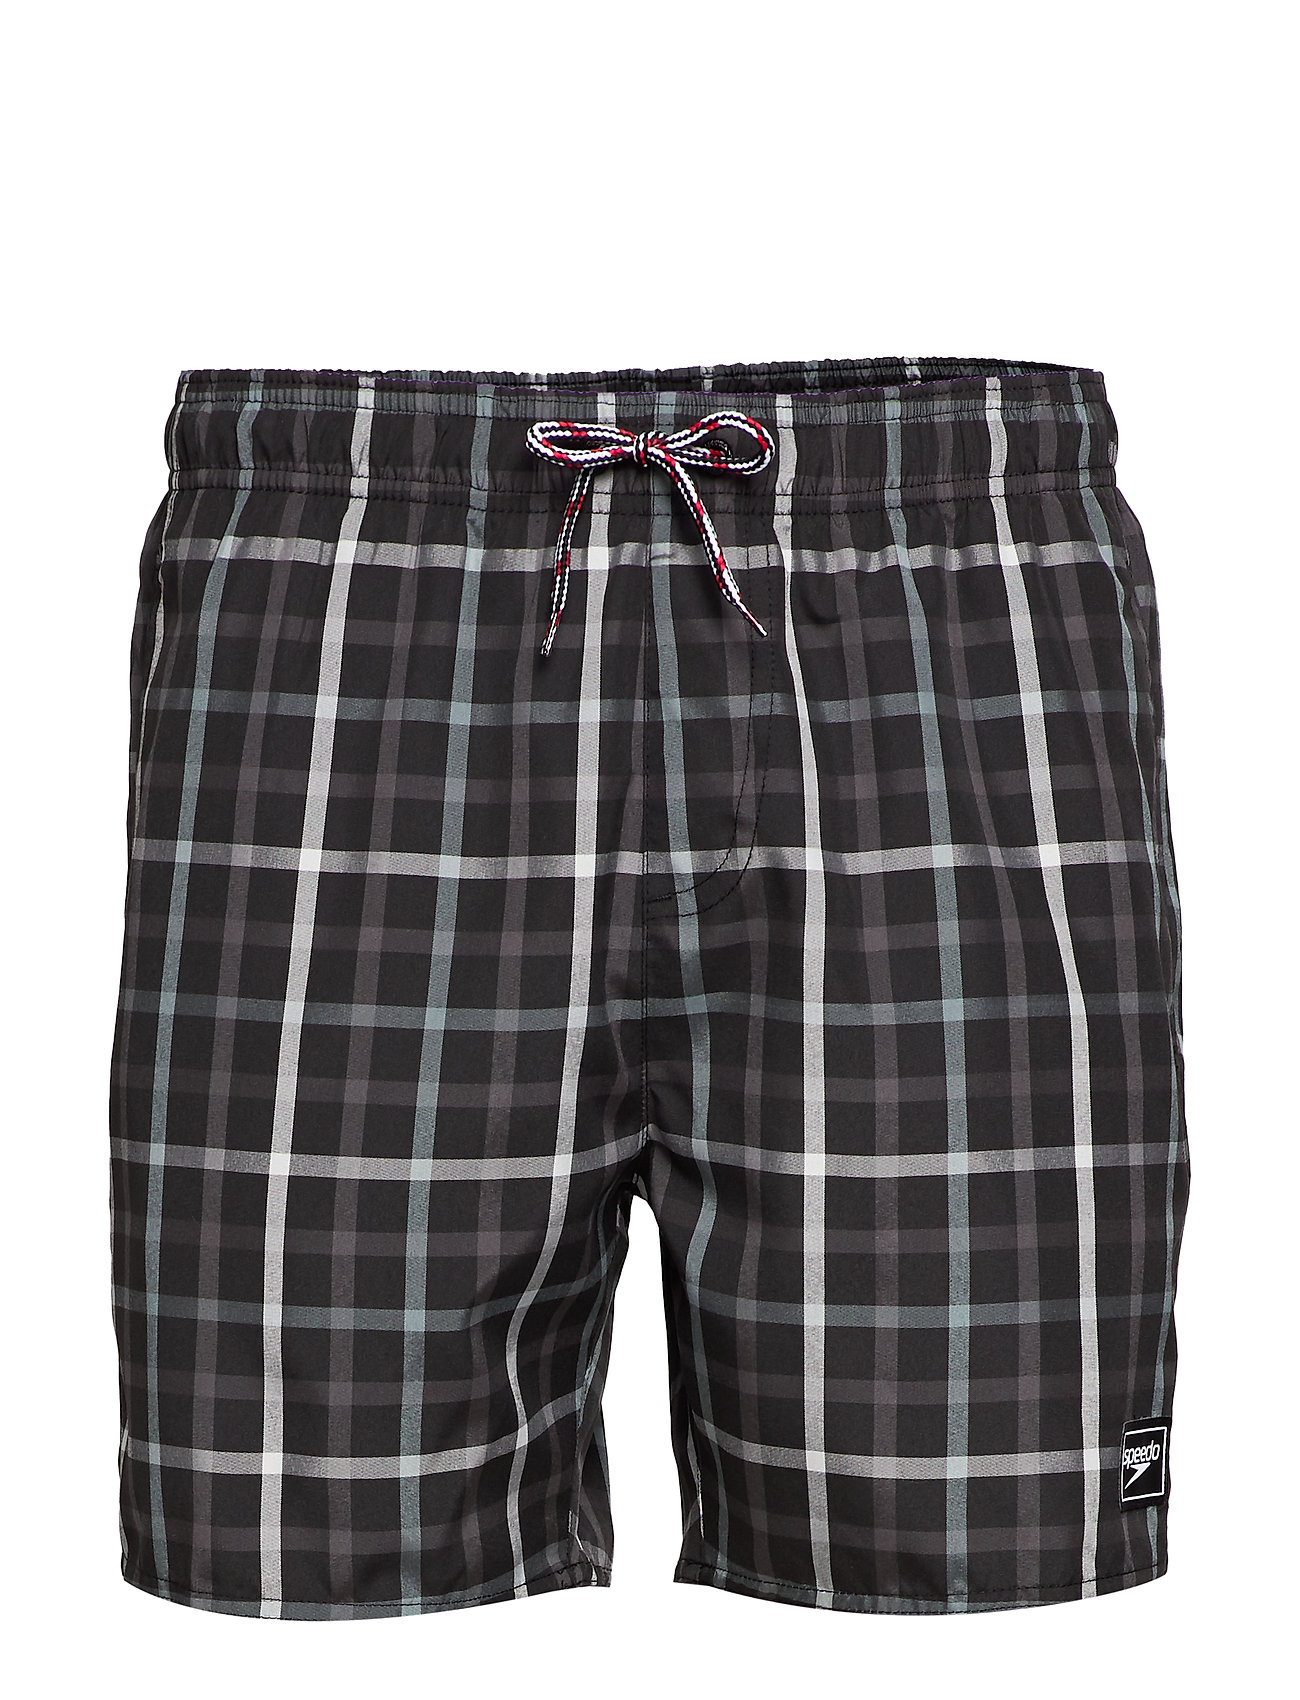 Image of Check Leisure 16 Watershort Badeshorts Multi/mønstret Speedo (3224263501)